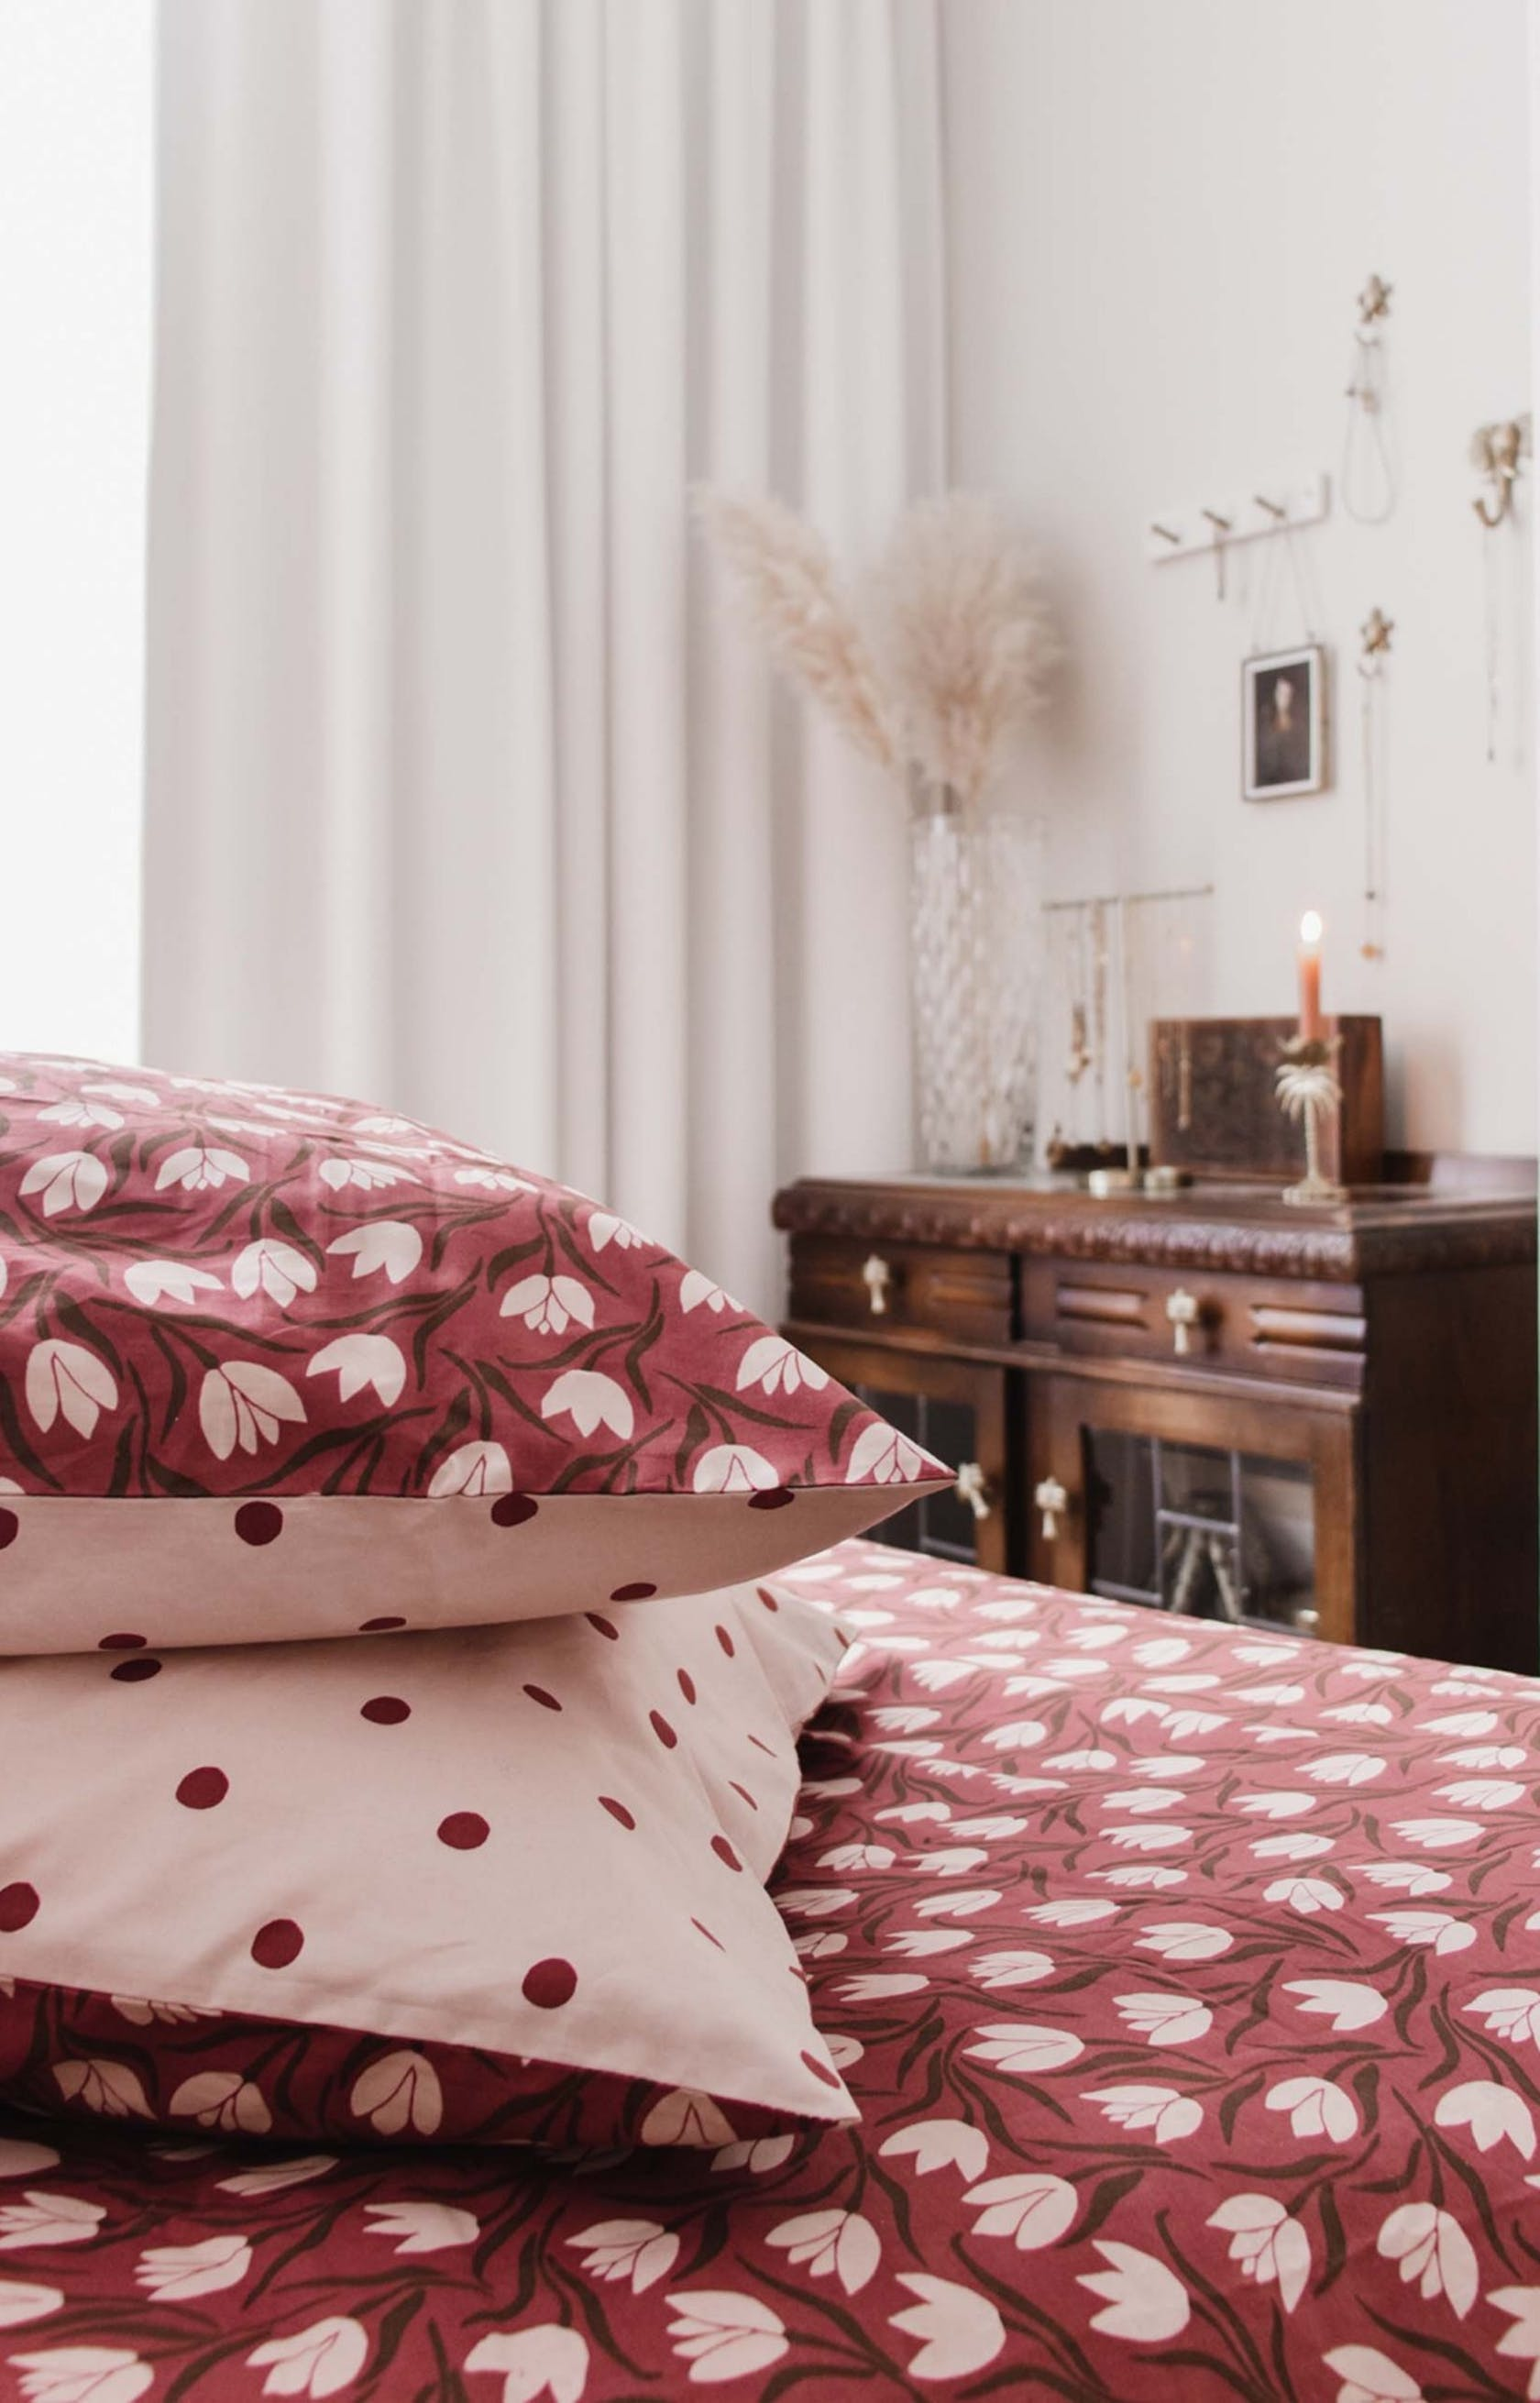 Duvet covers made from organic cotton